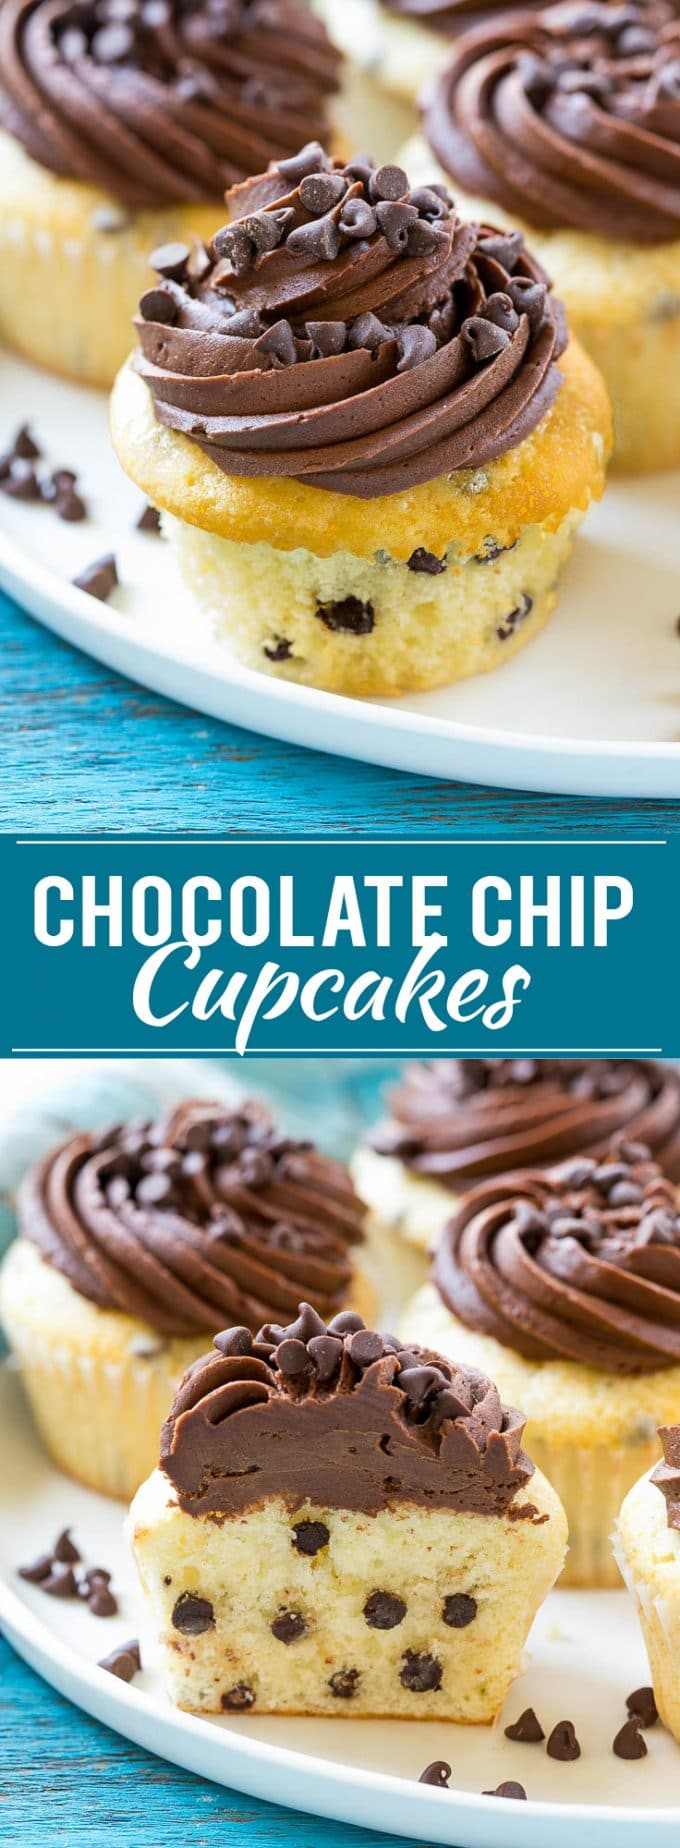 Chocolate Chip Cupcakes Recipe | Cupcake Recipe | Chocolate Chips | Chocolate Frosting | Easy Cupcake Recipe #cupcakes #chocolate #cake #dessert #dinneratthezoo